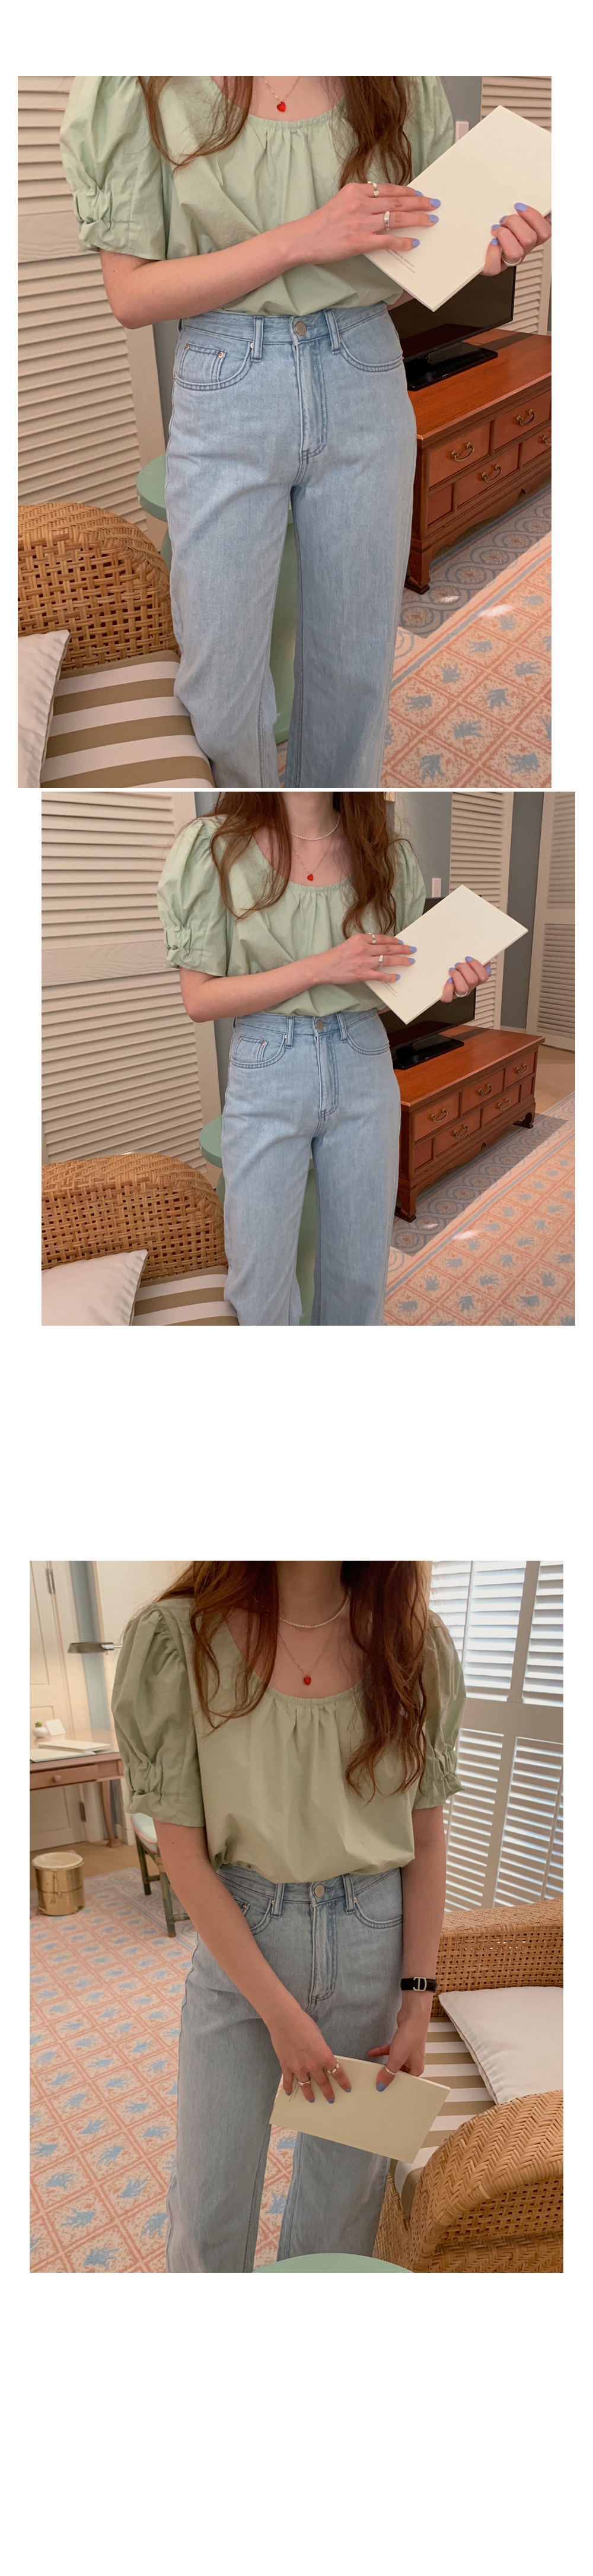 Hbc55a7e776224ae1a72a750ea1689bcc0 - Summer O-Neck Short Puff Sleeves Cotton Loose Solid Blouse